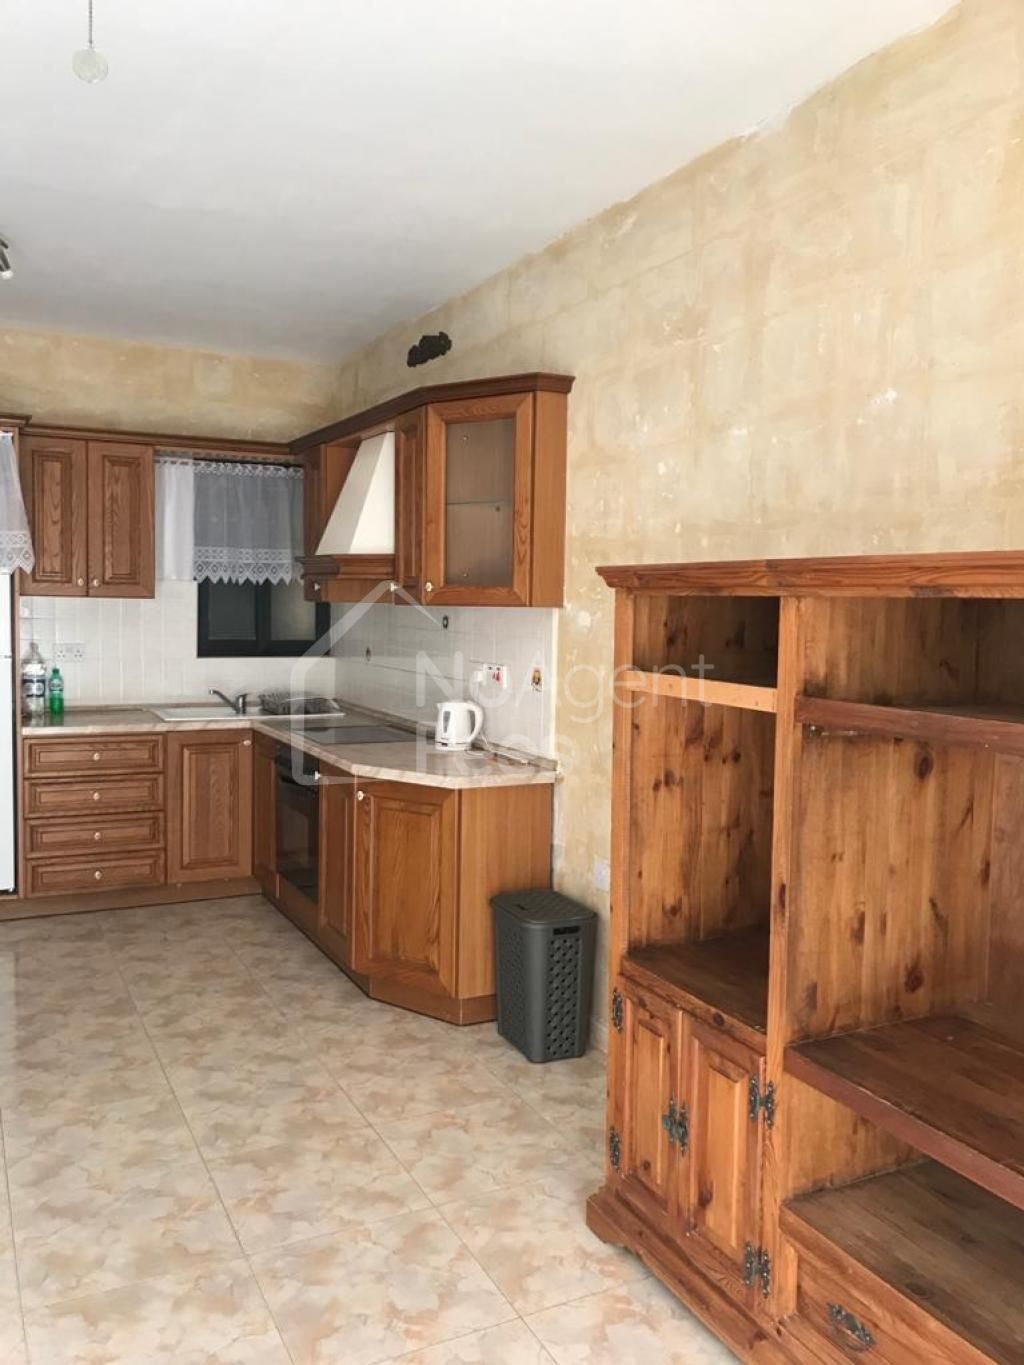 3 Bed Apartment For Rent In Buġibba, North Malta #6779 ...